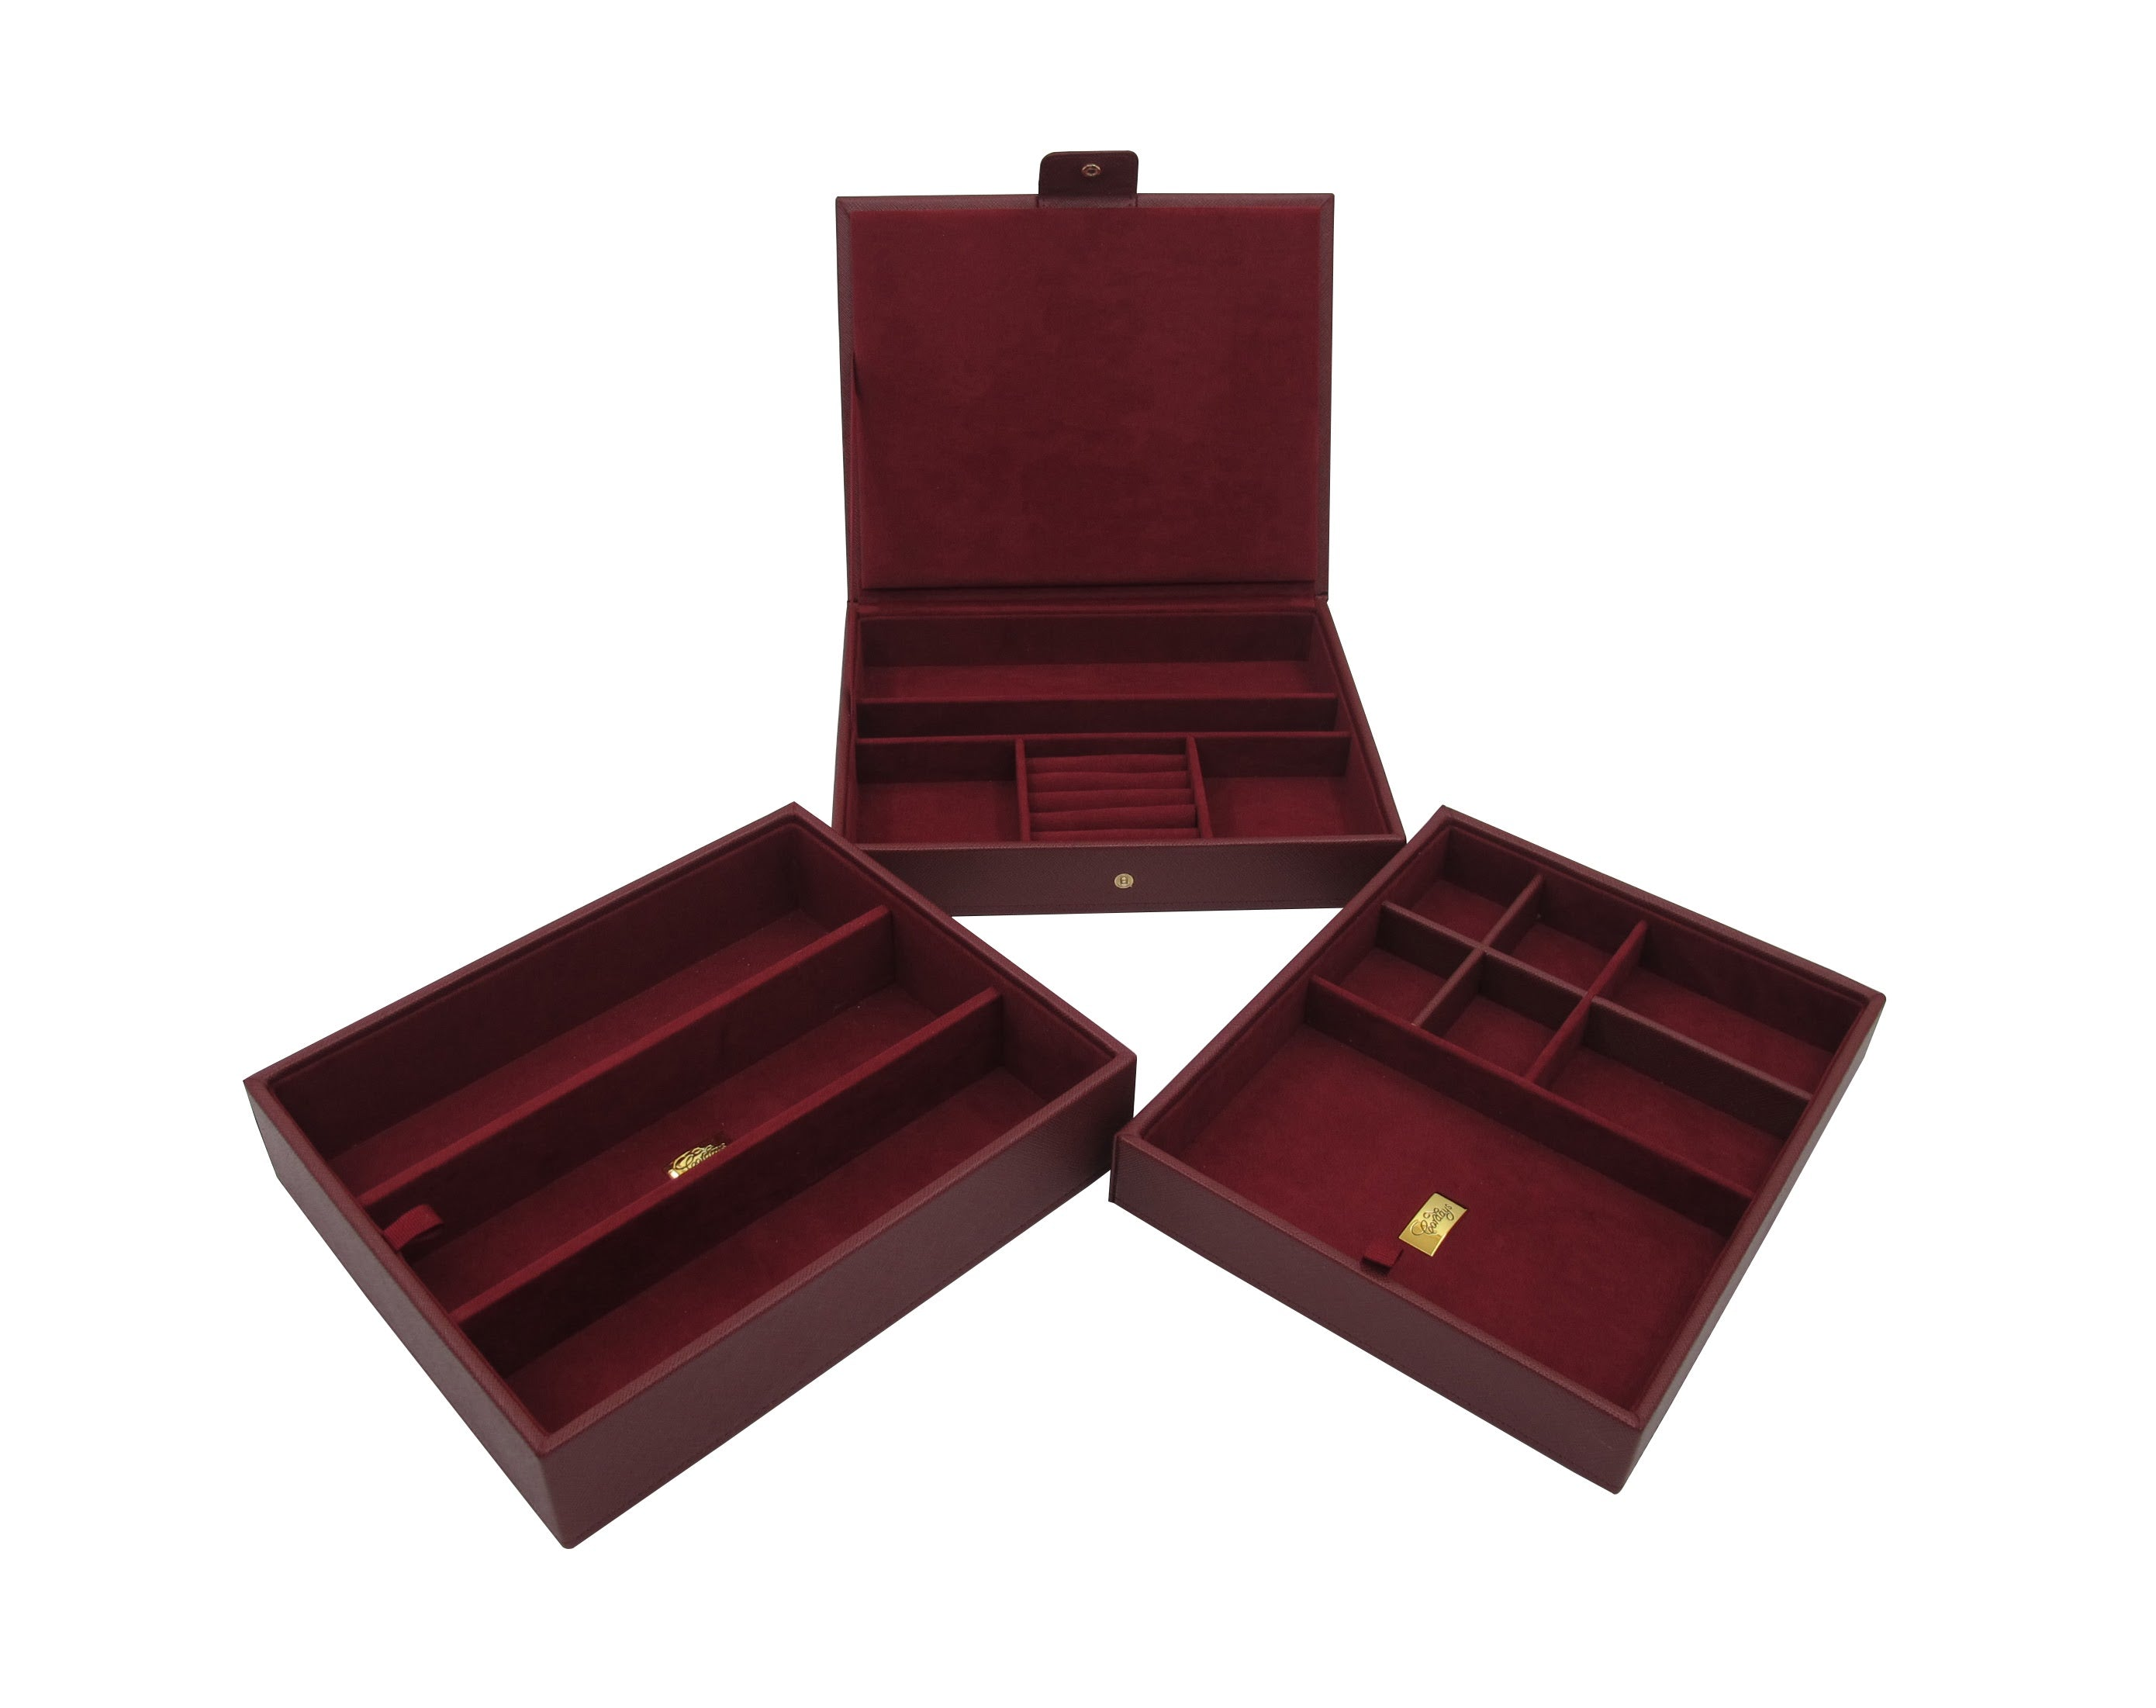 Set of 3 Stacker Trays in Top Quality Leatherette